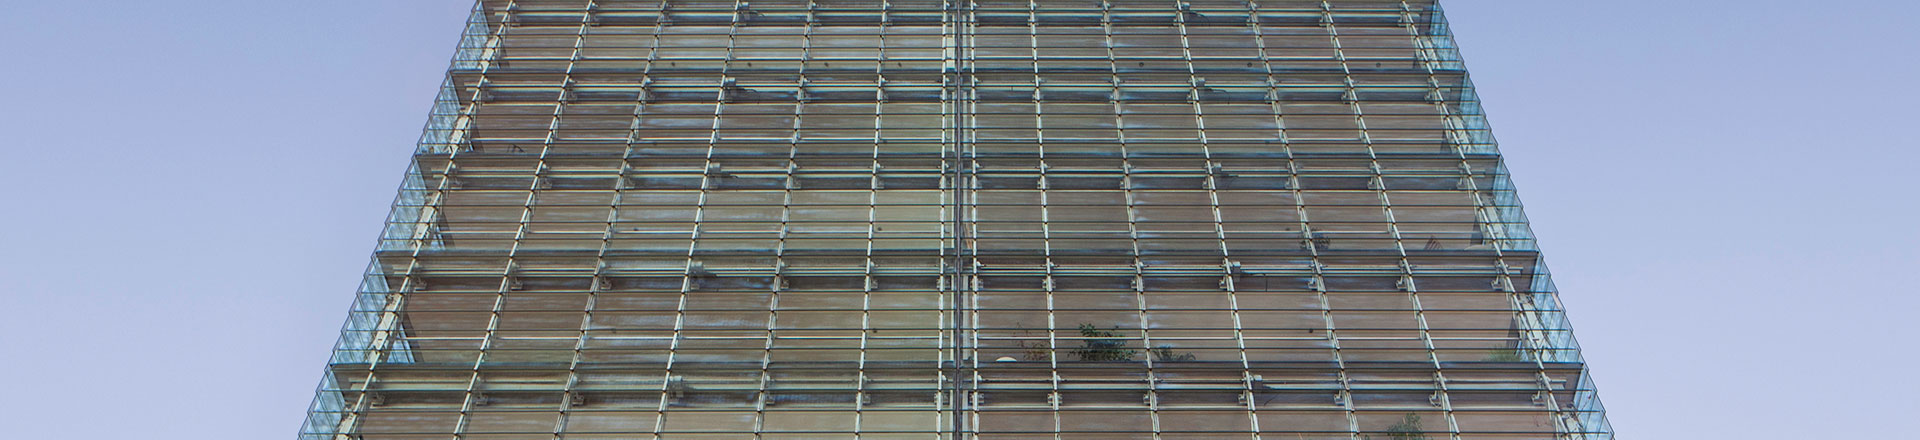 Cradle Window Cleaning in Manchester and the North West - HCS Cleaning Services